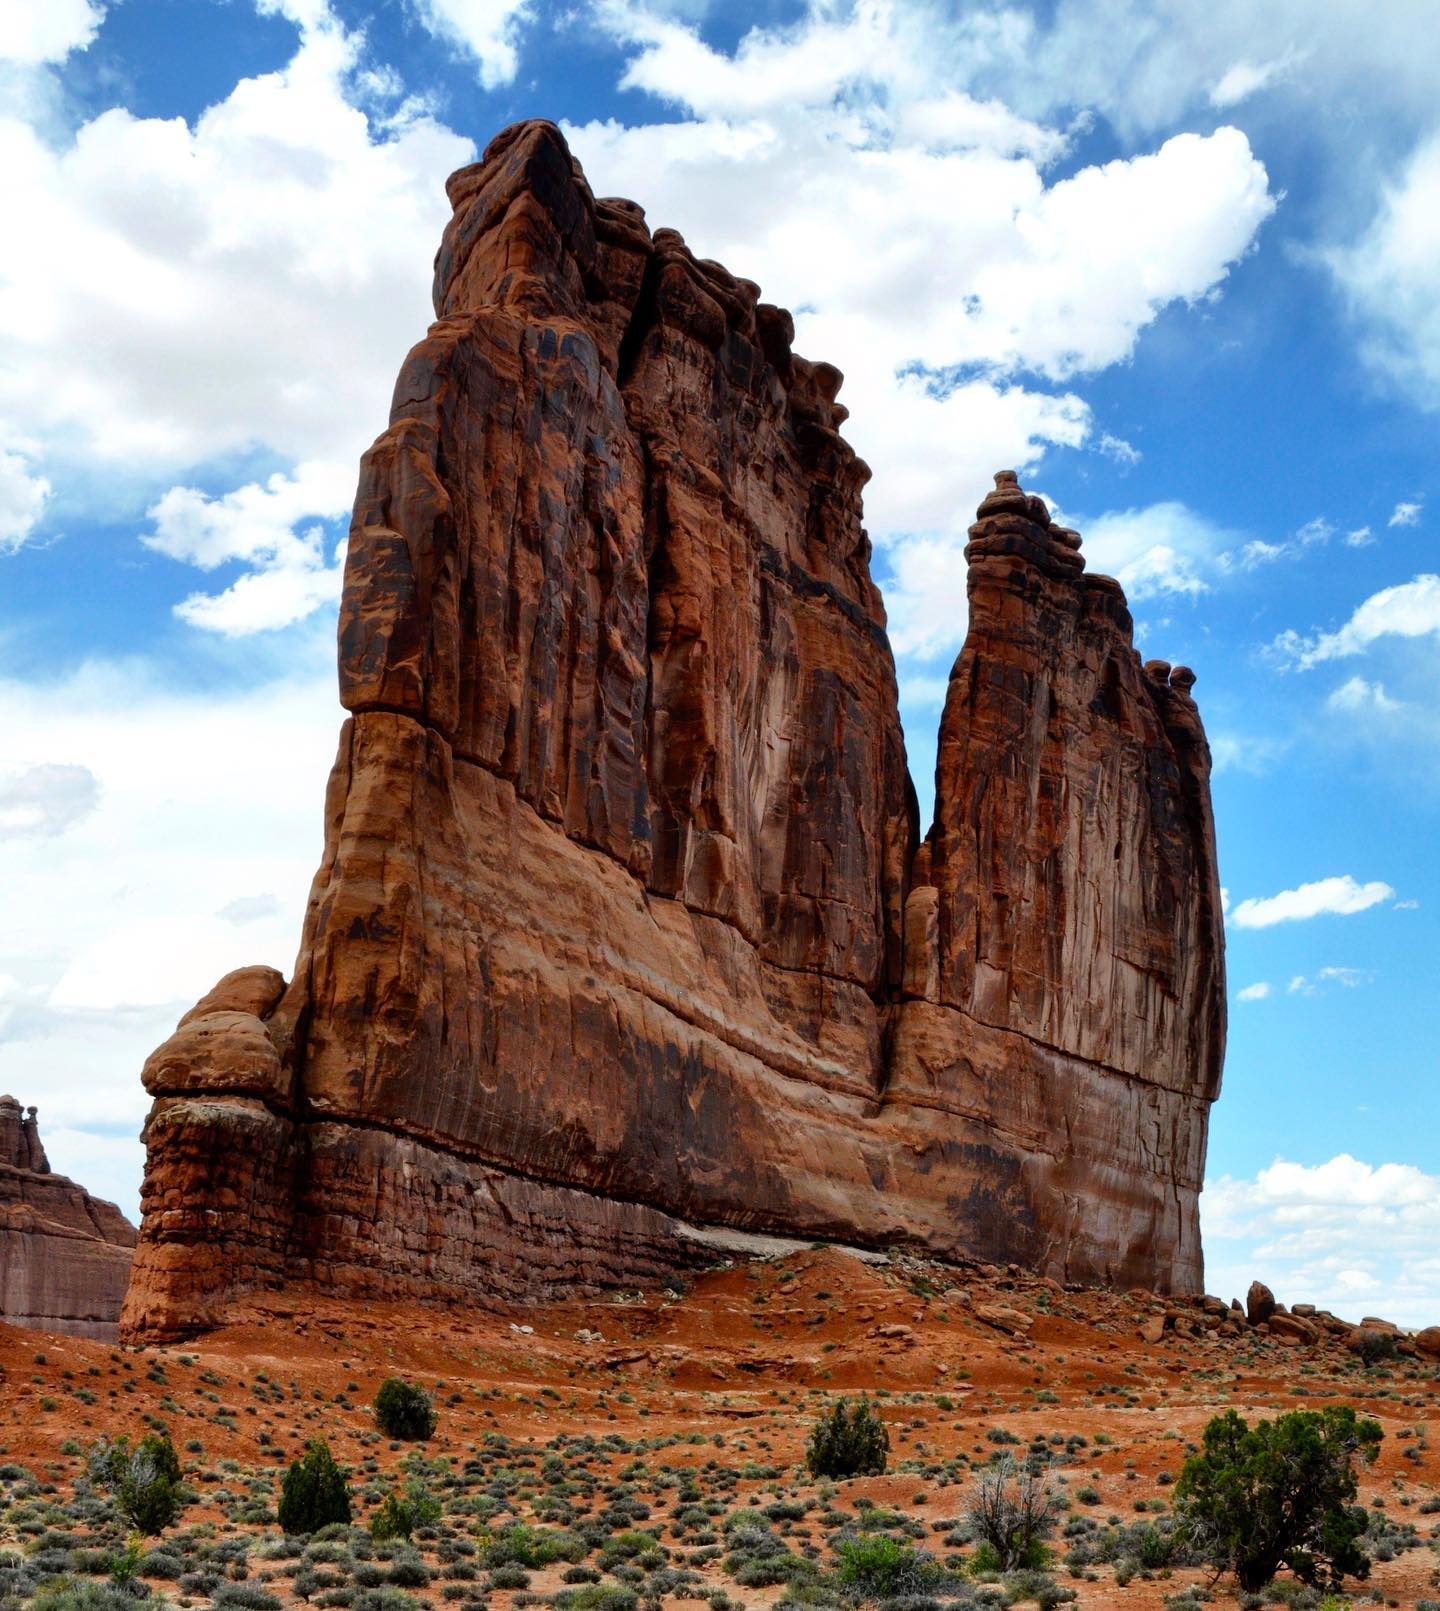 "The Organ, Arches NP, Utah  If you hike along the Park Avenue Trail you will be treated with great views of the Courthouse Towers, which is composed of formations of The Organ, The Tower of Babel, The Three Gossips and Sheep Rock. Arches NP should be on everyone's ""must see"" list of  US National Parks.  #usatravel #usatravels #traveltheusa #traveltheus #roadtripusa #roadtripamerica #travelphotography #travelpics #travelblogger #usablogger #utah #utahunique #utahgram #naturelovers #natureandme #archesnationalpark #archesnps #utahstoke #utahexplored #exploremore #exploretheusa #wanderlust #visitutah #rockformation #hikingutah #hikinglove #instatraveling #usaaddicted #beautifulnature #naturephotography"